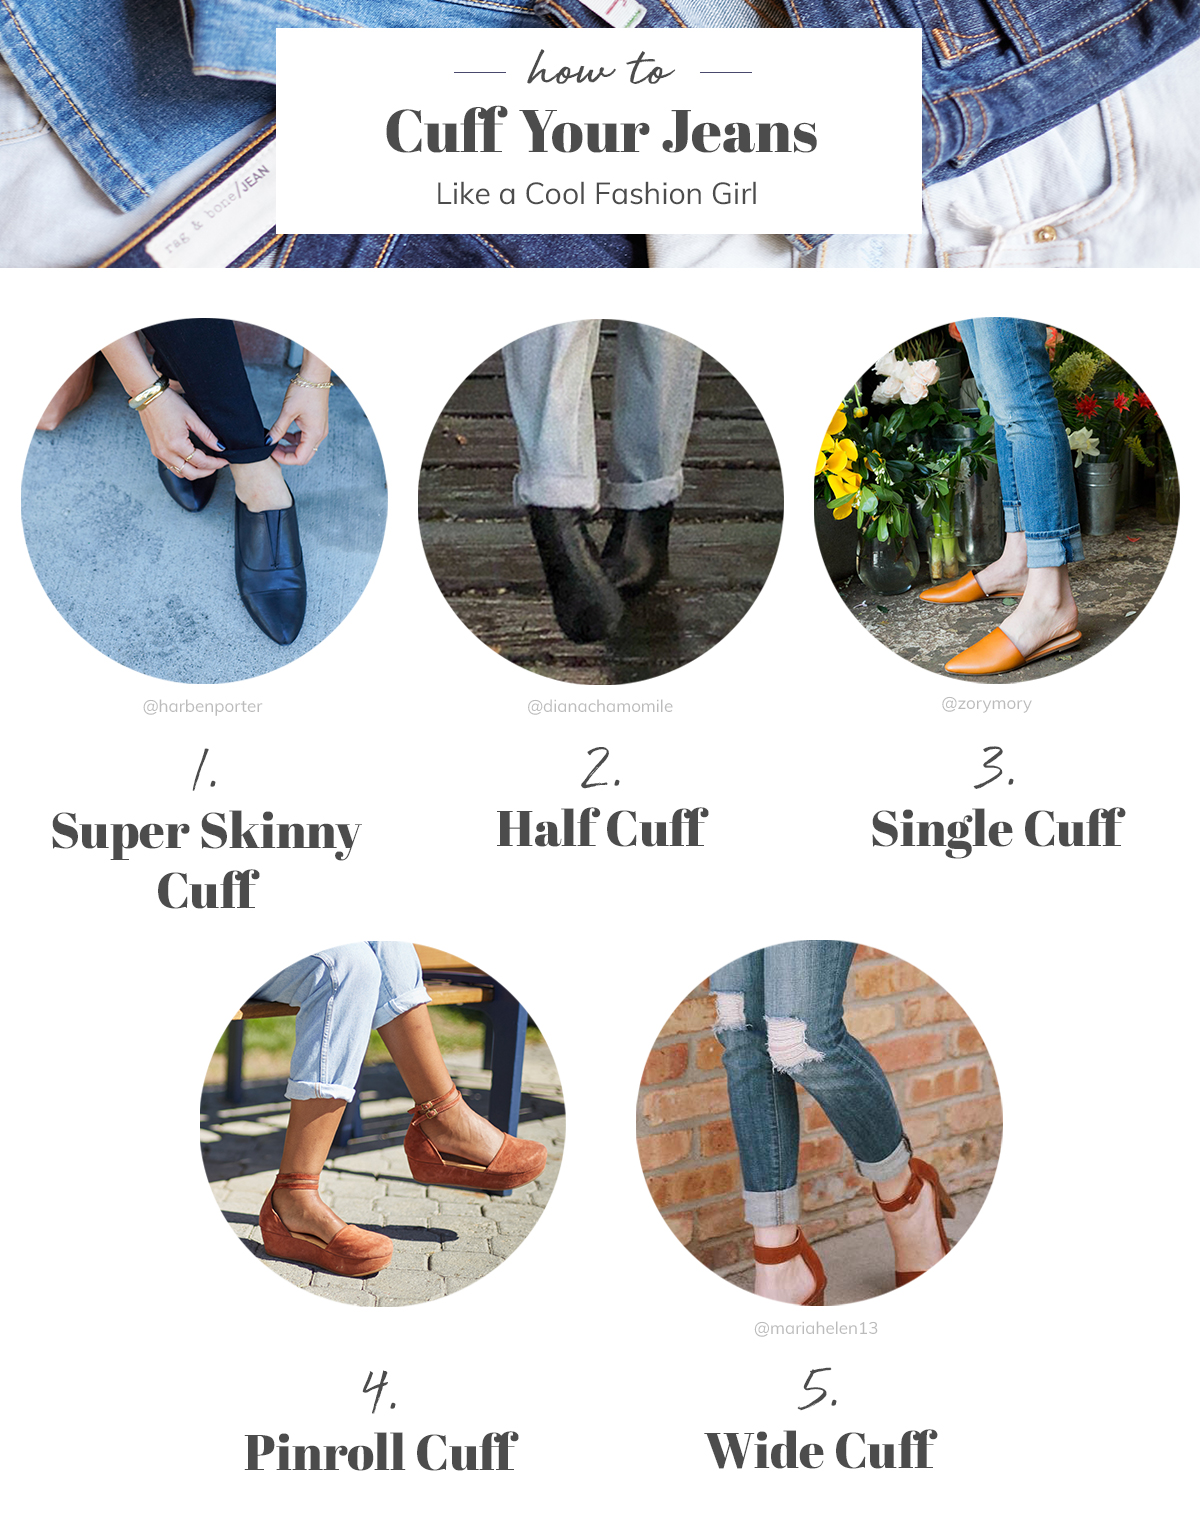 58d46e0e5 5 Ways to Cuff Your Jeans Like a Cool Fashion Girl